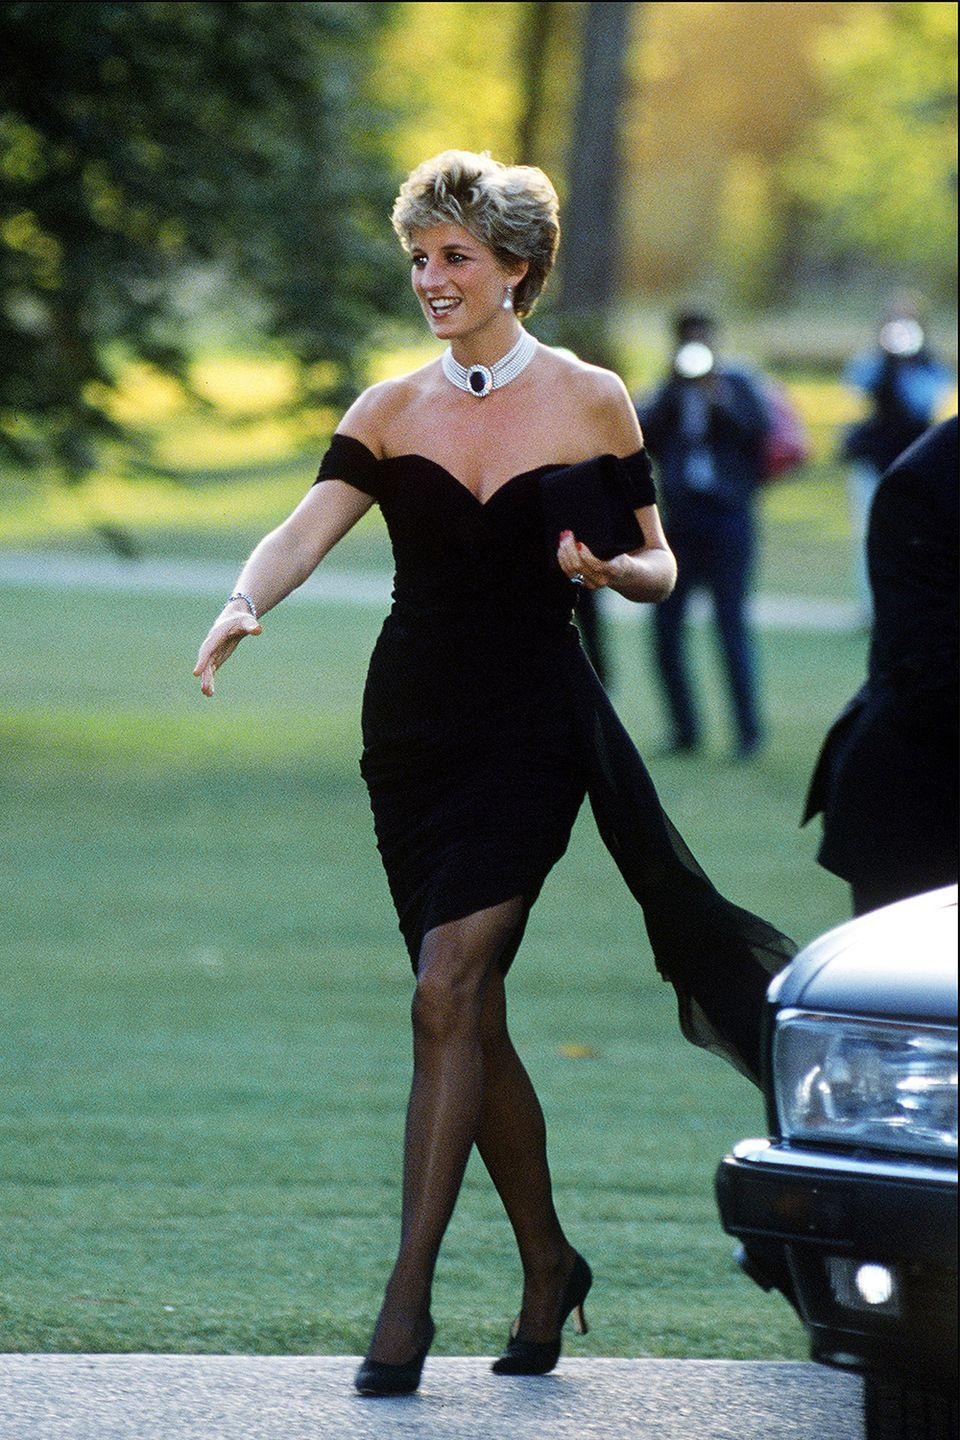 <p>On the evening that Prince Charles' controversial documentary aired in 1994 (the one in which he admitted to having an affair), Diana showed up to the Seperntine Gallery in a look unlike anything a royal had ever worn. The look has since been appropriately dubbed <em>the revenge dress</em>. <br></p>